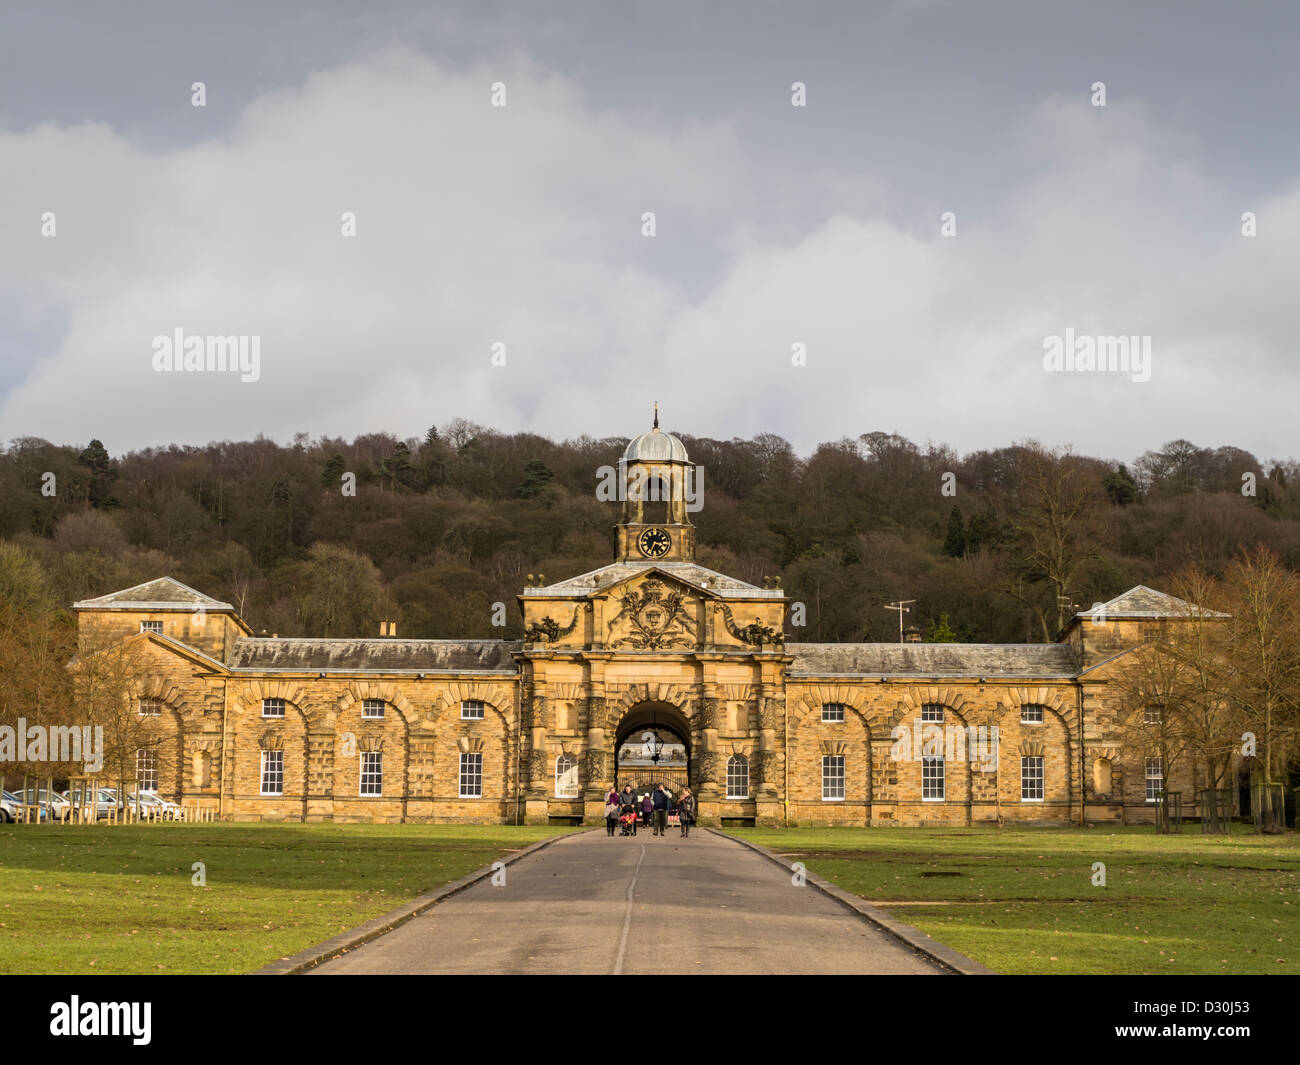 The Former Stables and courtyard at Chatsworth in the Derbyshire Peak District England - Stock Image